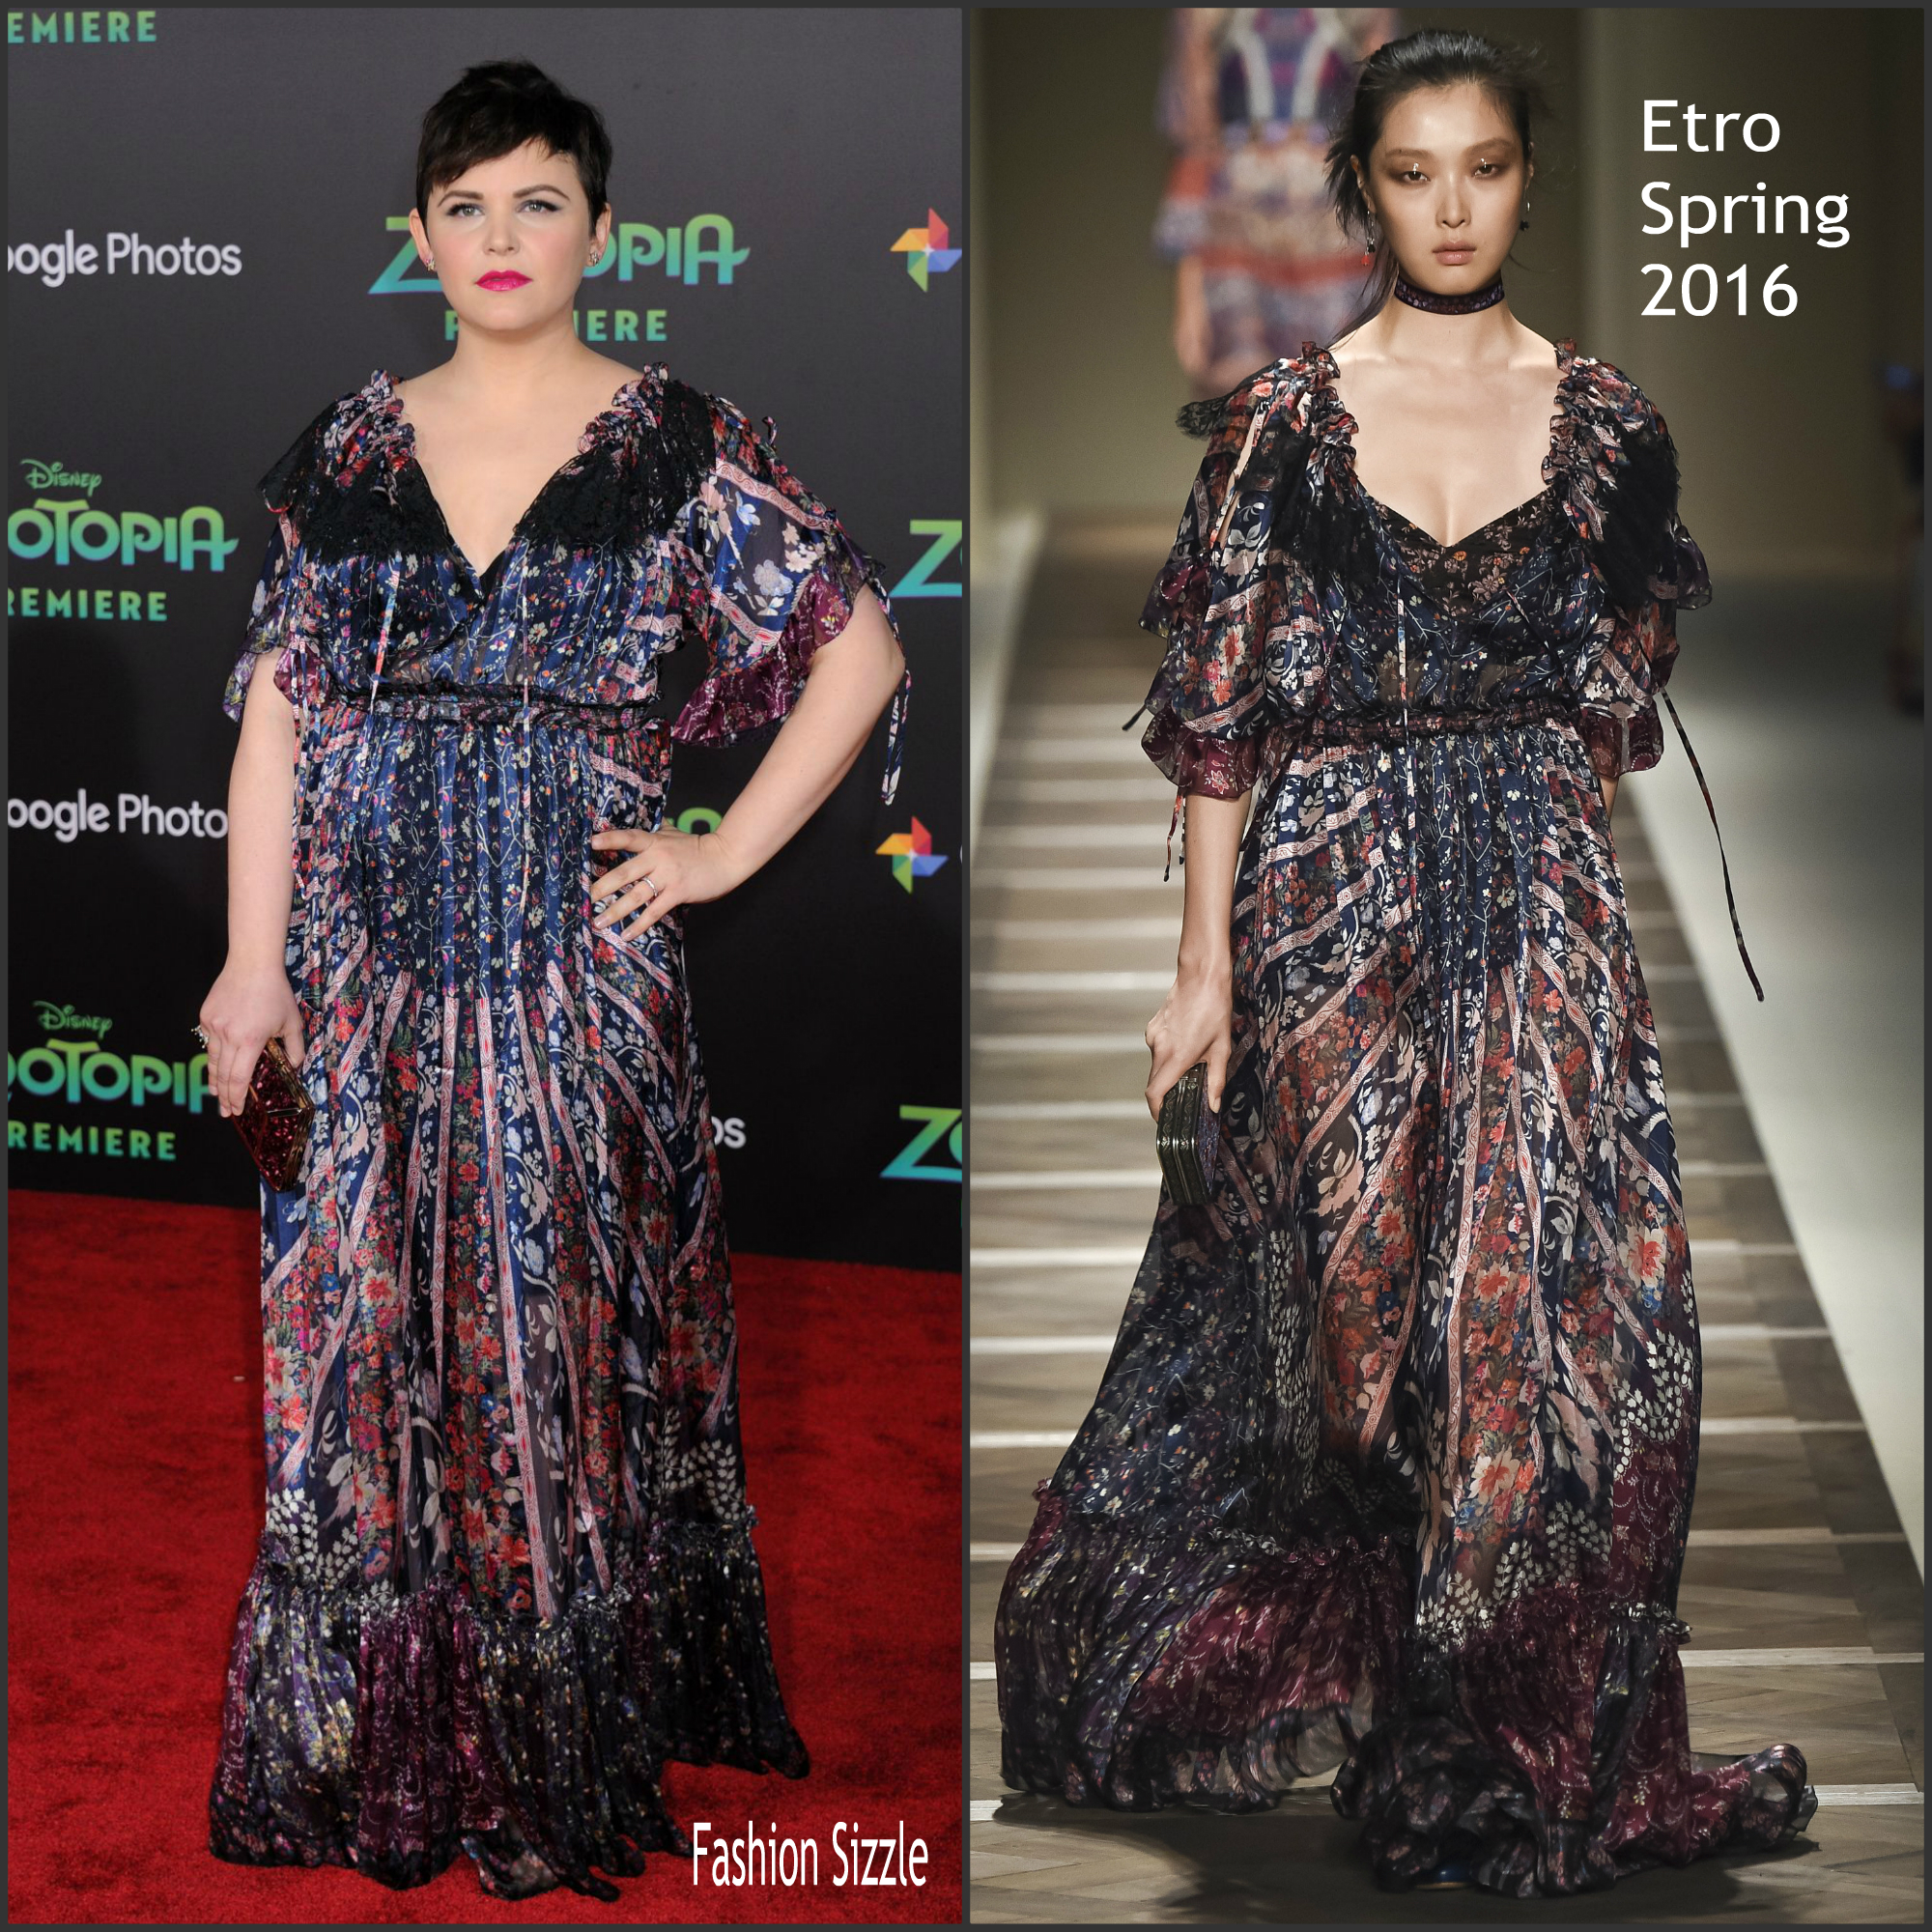 ginnifer-goodwin-in-etro-zootopia-premiere-in-hollywood-ca